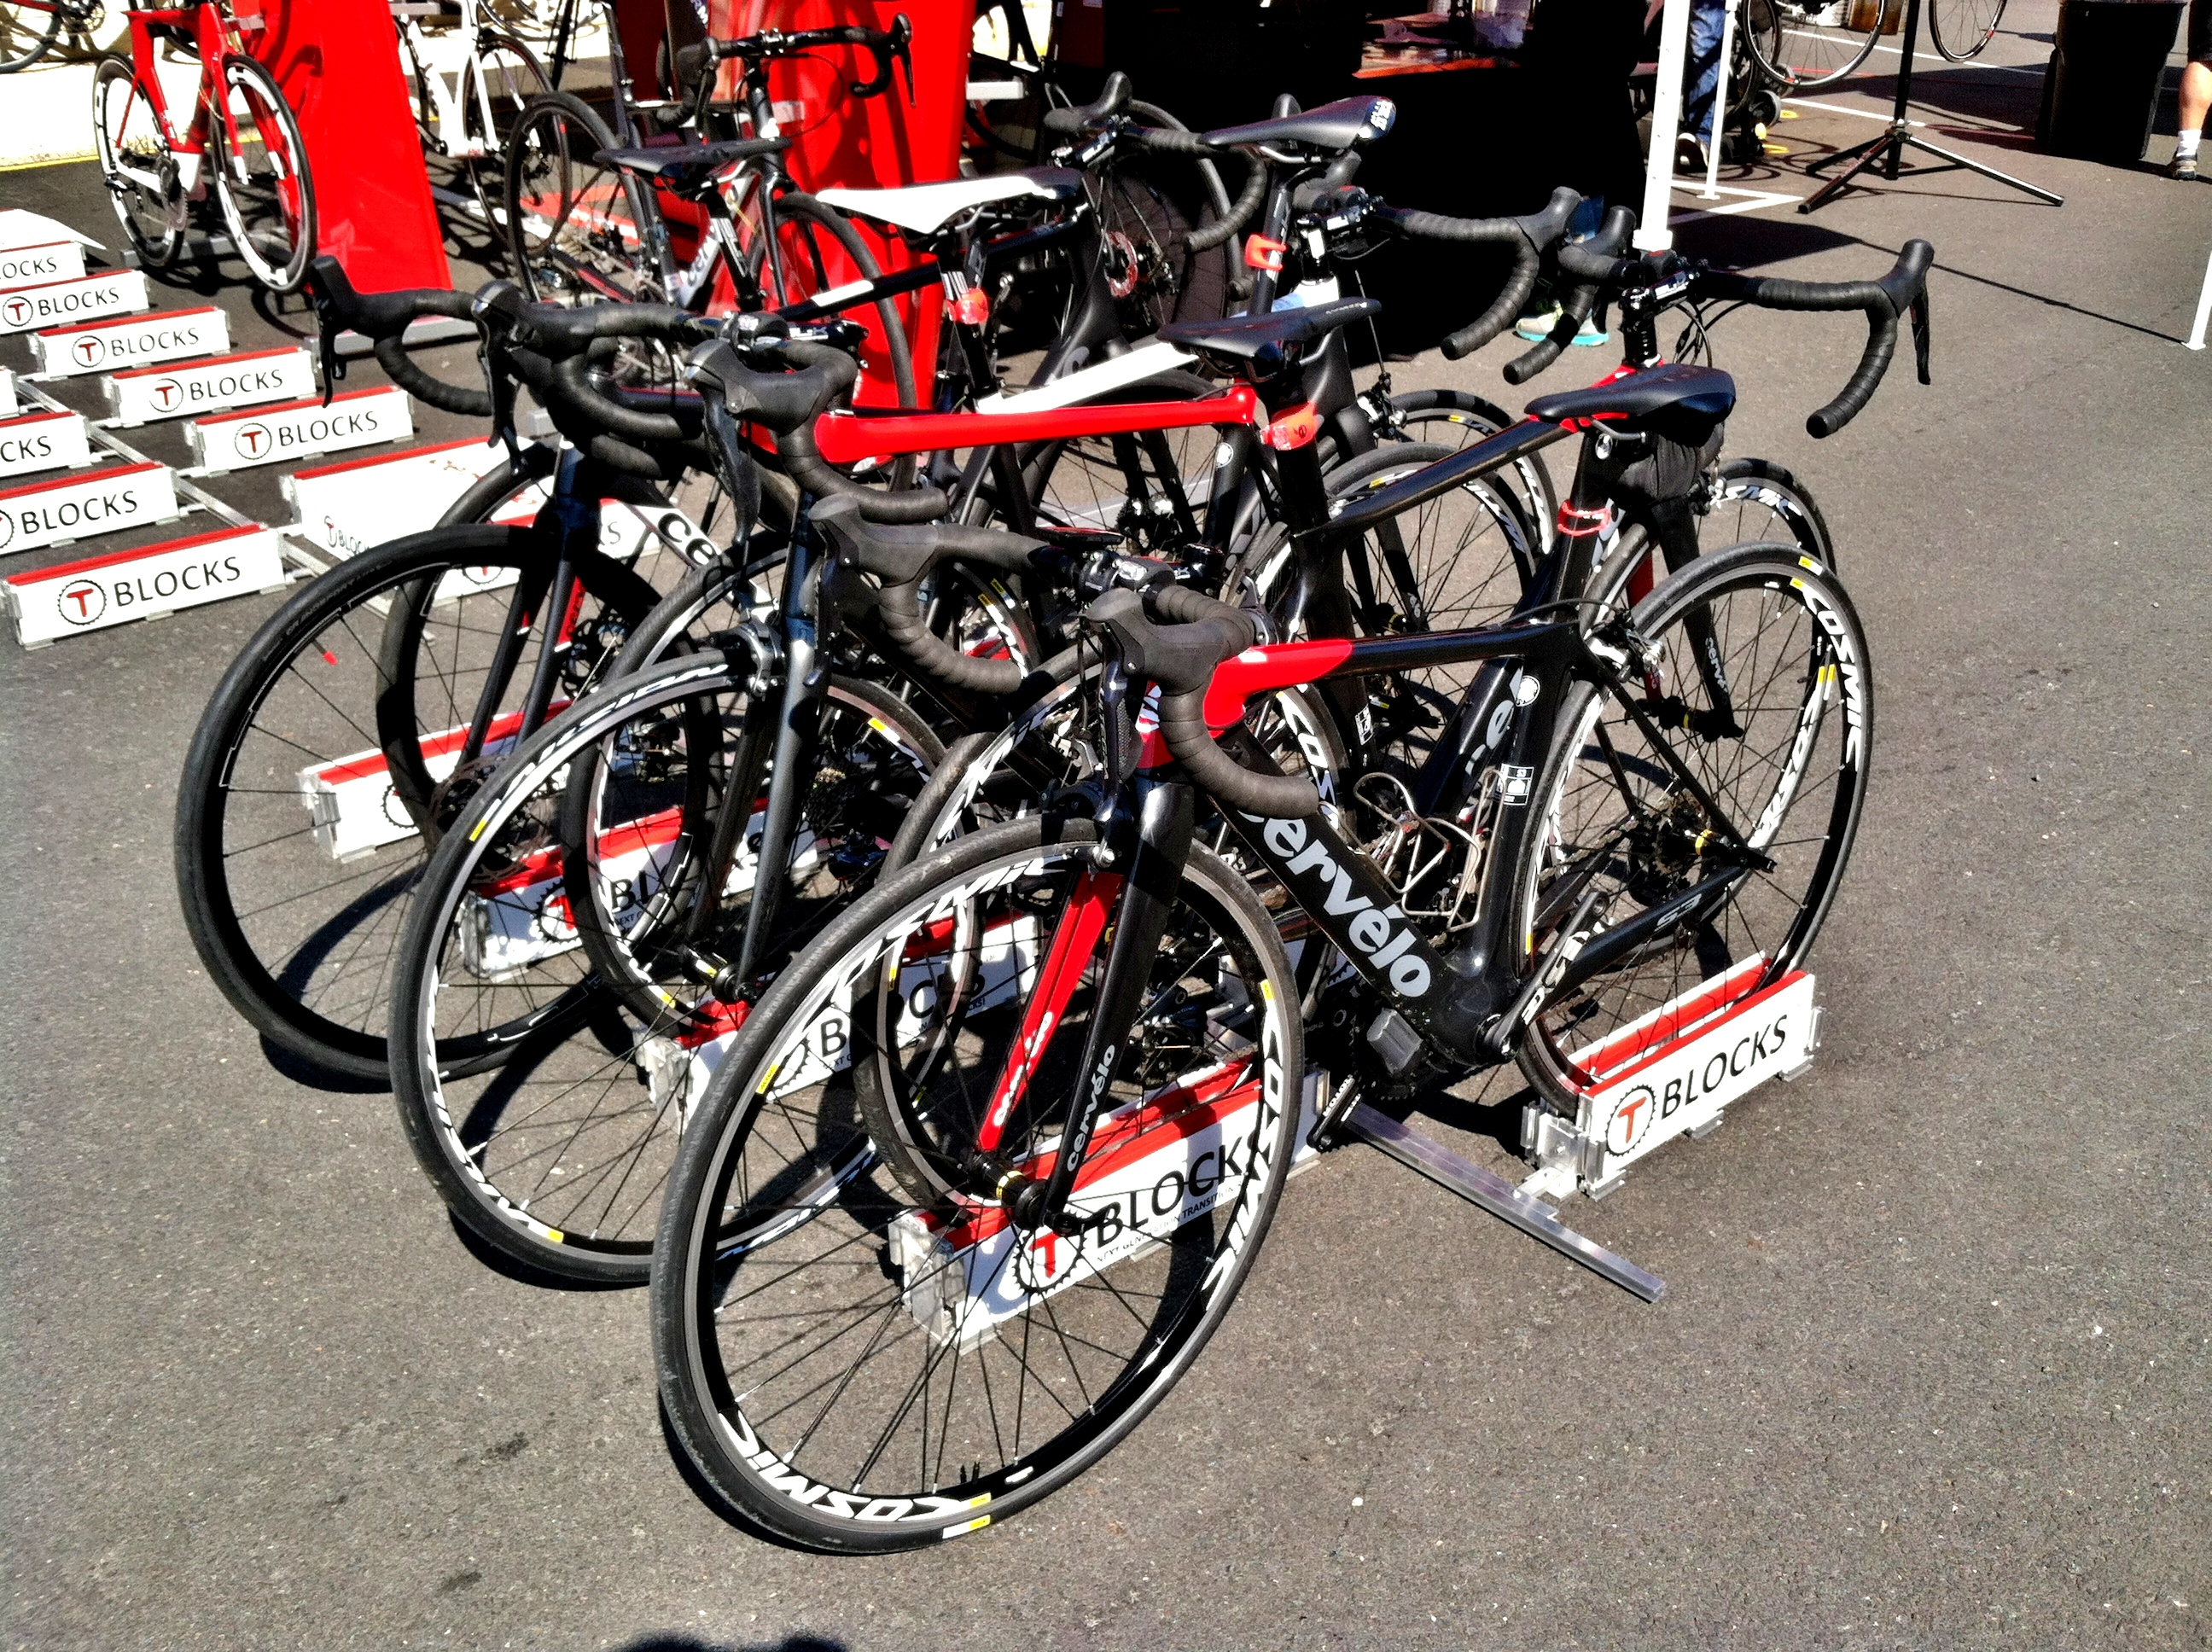 T-BLOCKS Triathlon Transition Racks